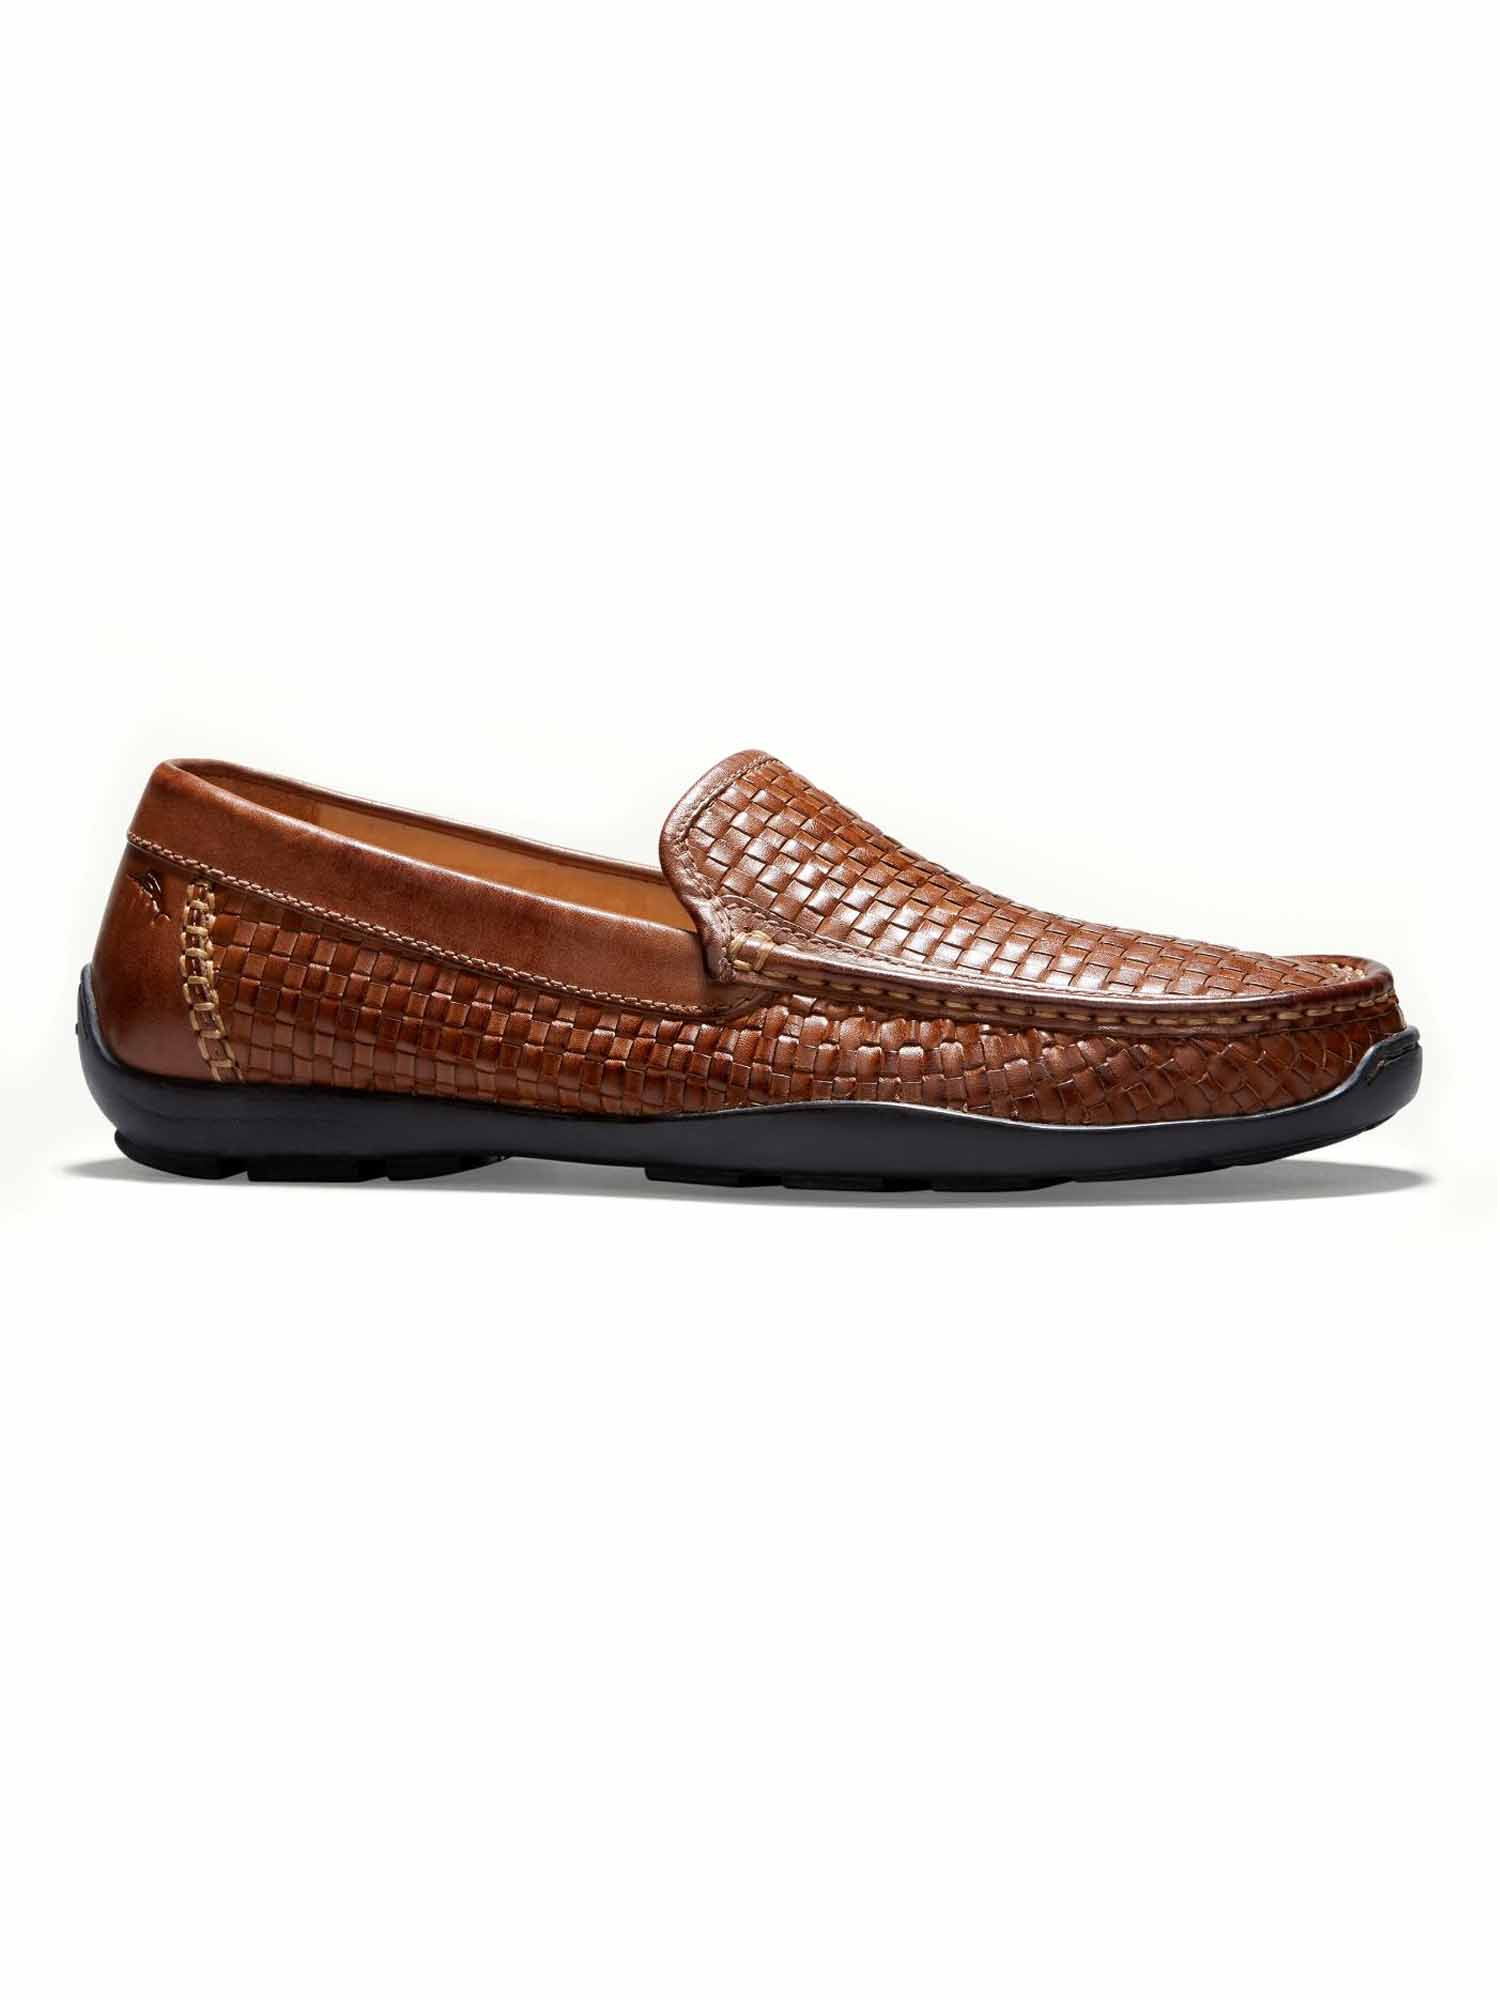 Tommy Bahama Mens Orson Woven Leather Venetian Drivers (Dark Tan, 9) by